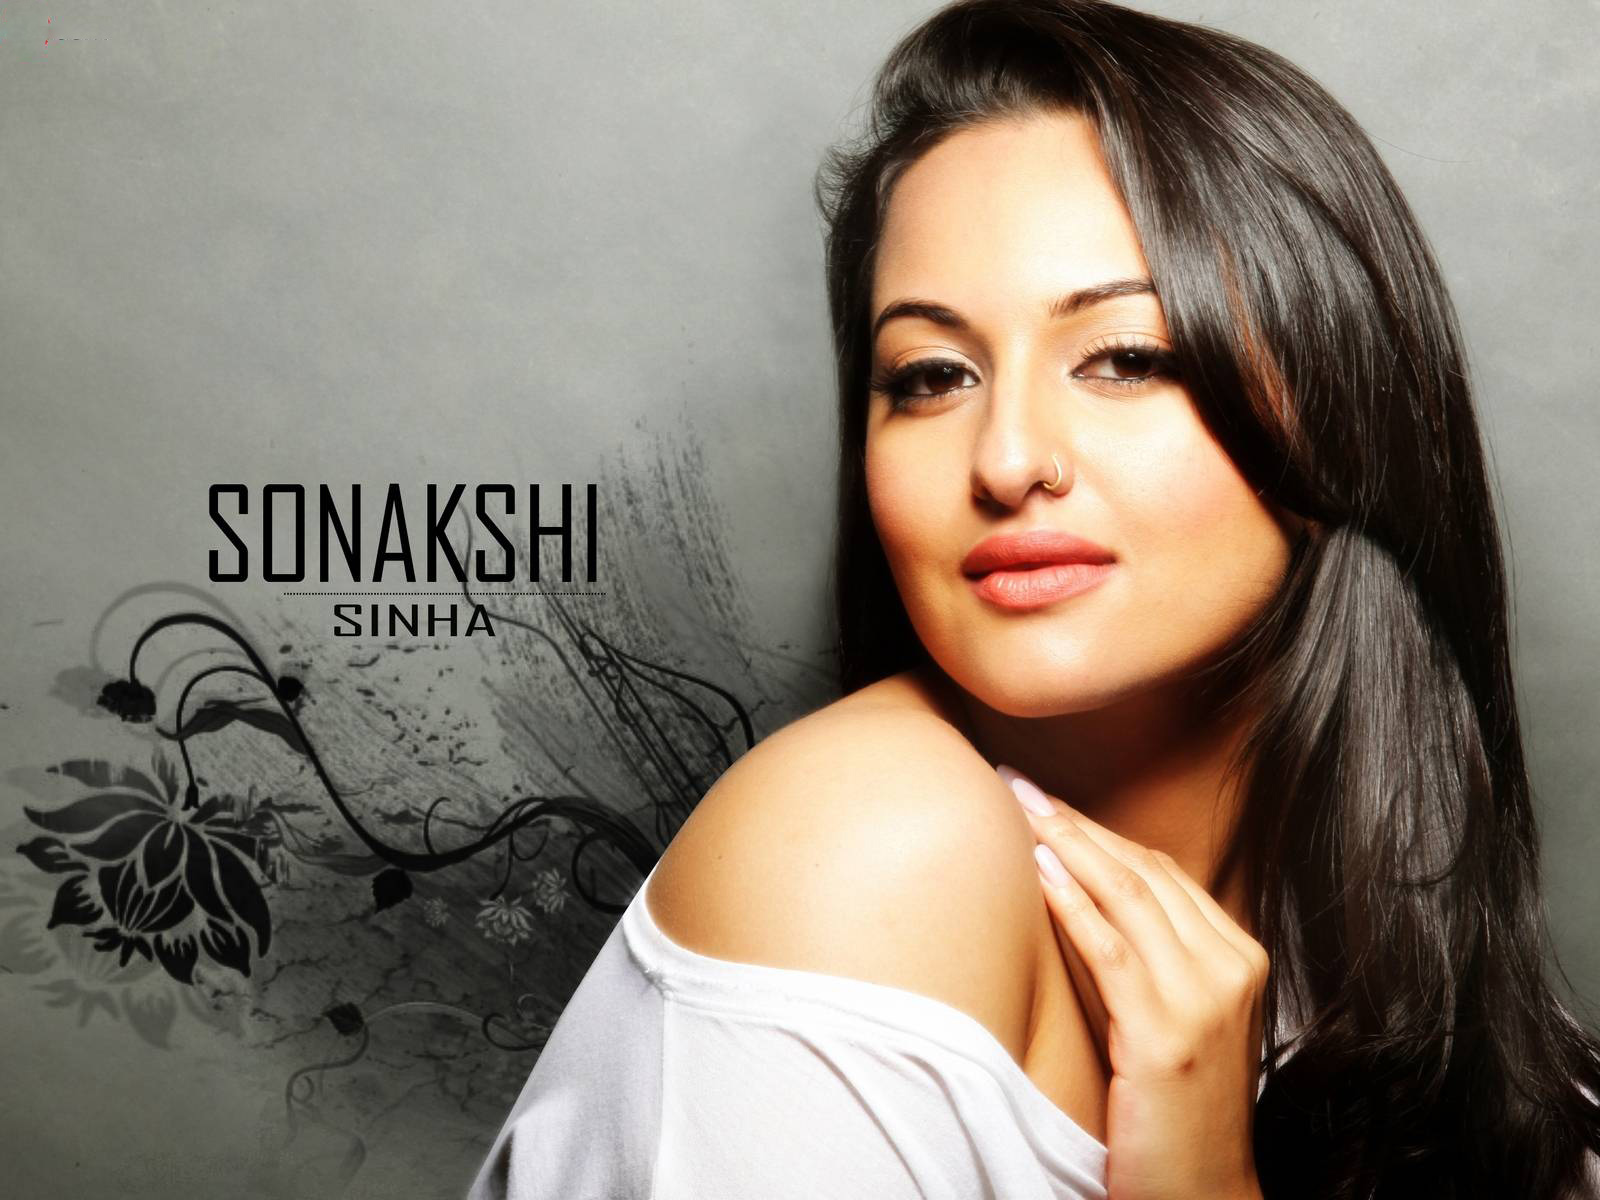 star wallpaper: sonakshi sinha hd wallpapers 2015